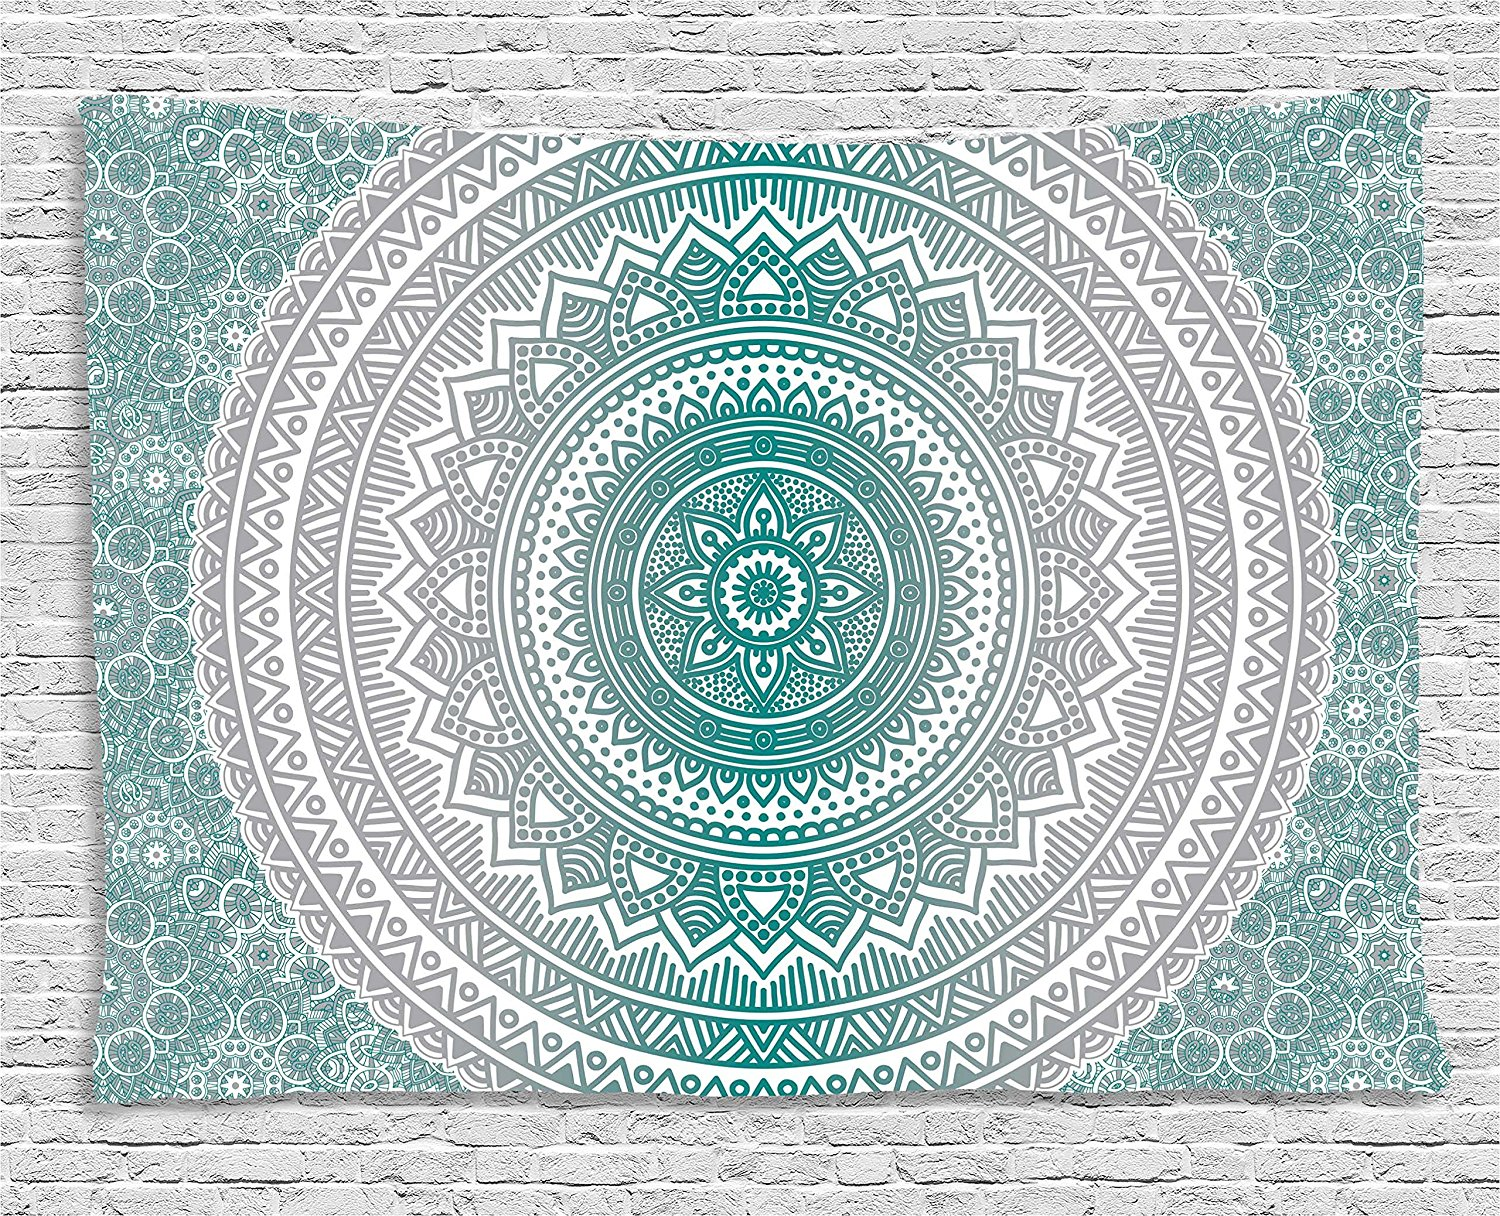 Grey and Teal Tapestry, Mandala Ombre Design Sacred Space Geometric Center Point Boho Meditation Art,Wall Hanging Tapestry